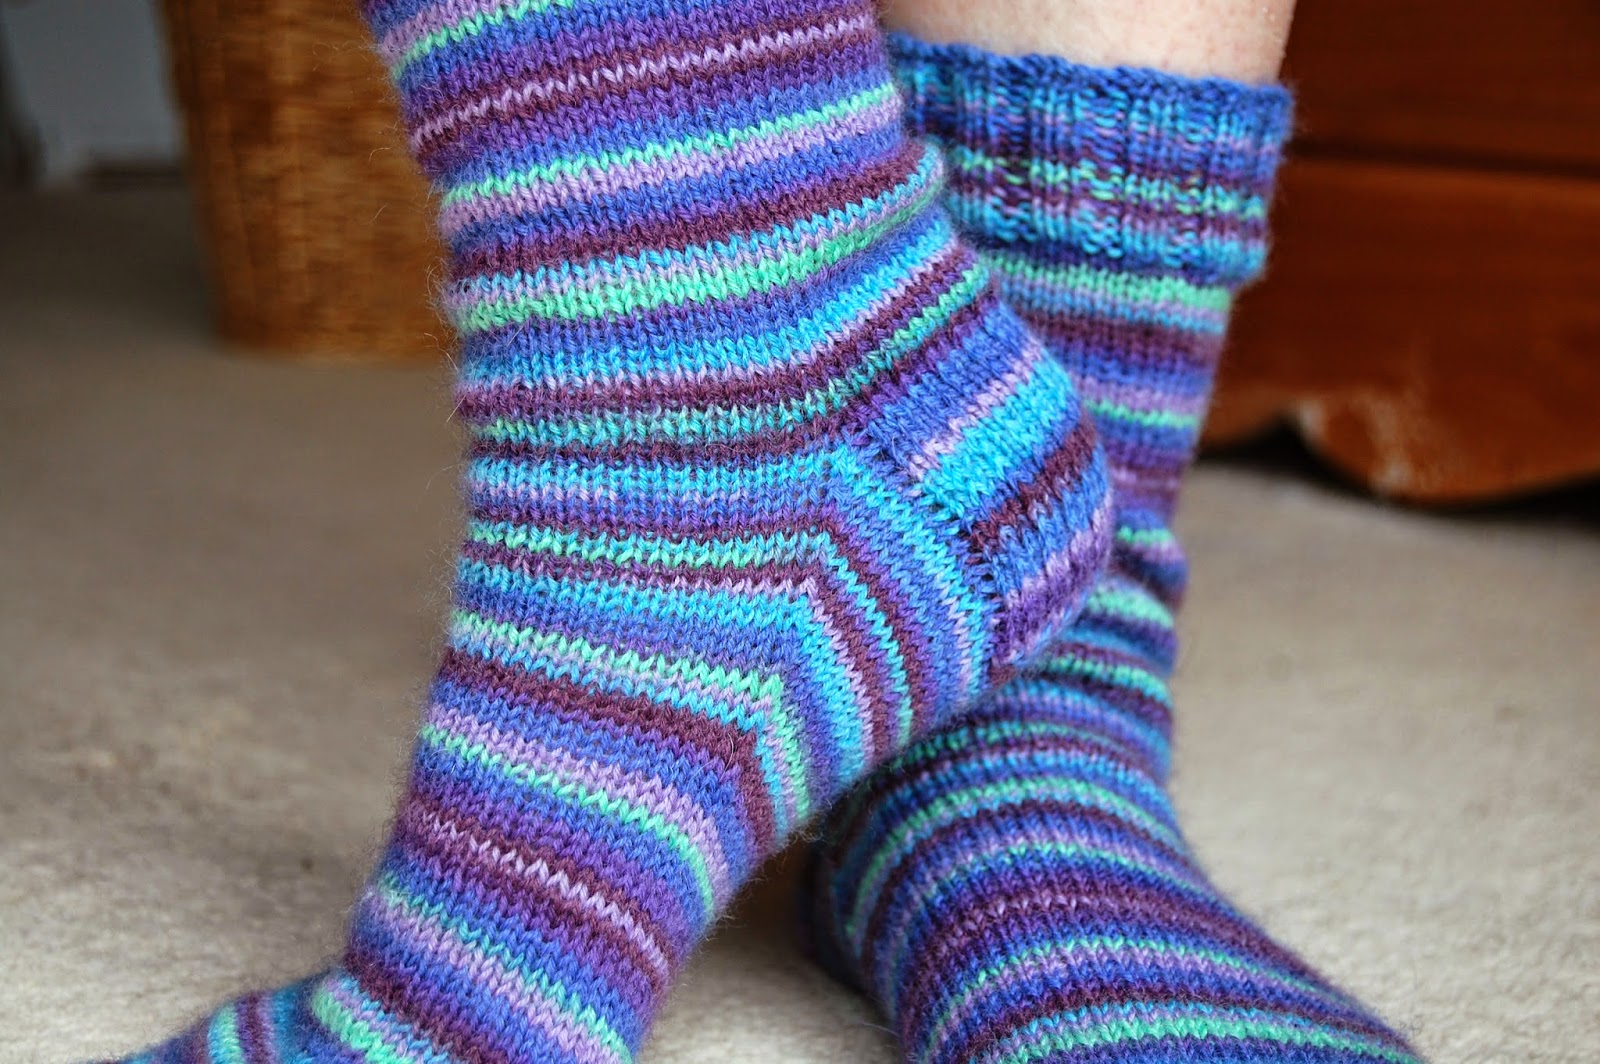 Knitting Pattern For Beginner : Winwick Mum: Basic 4ply sock pattern and tutorial - easy beginner sock knitting!